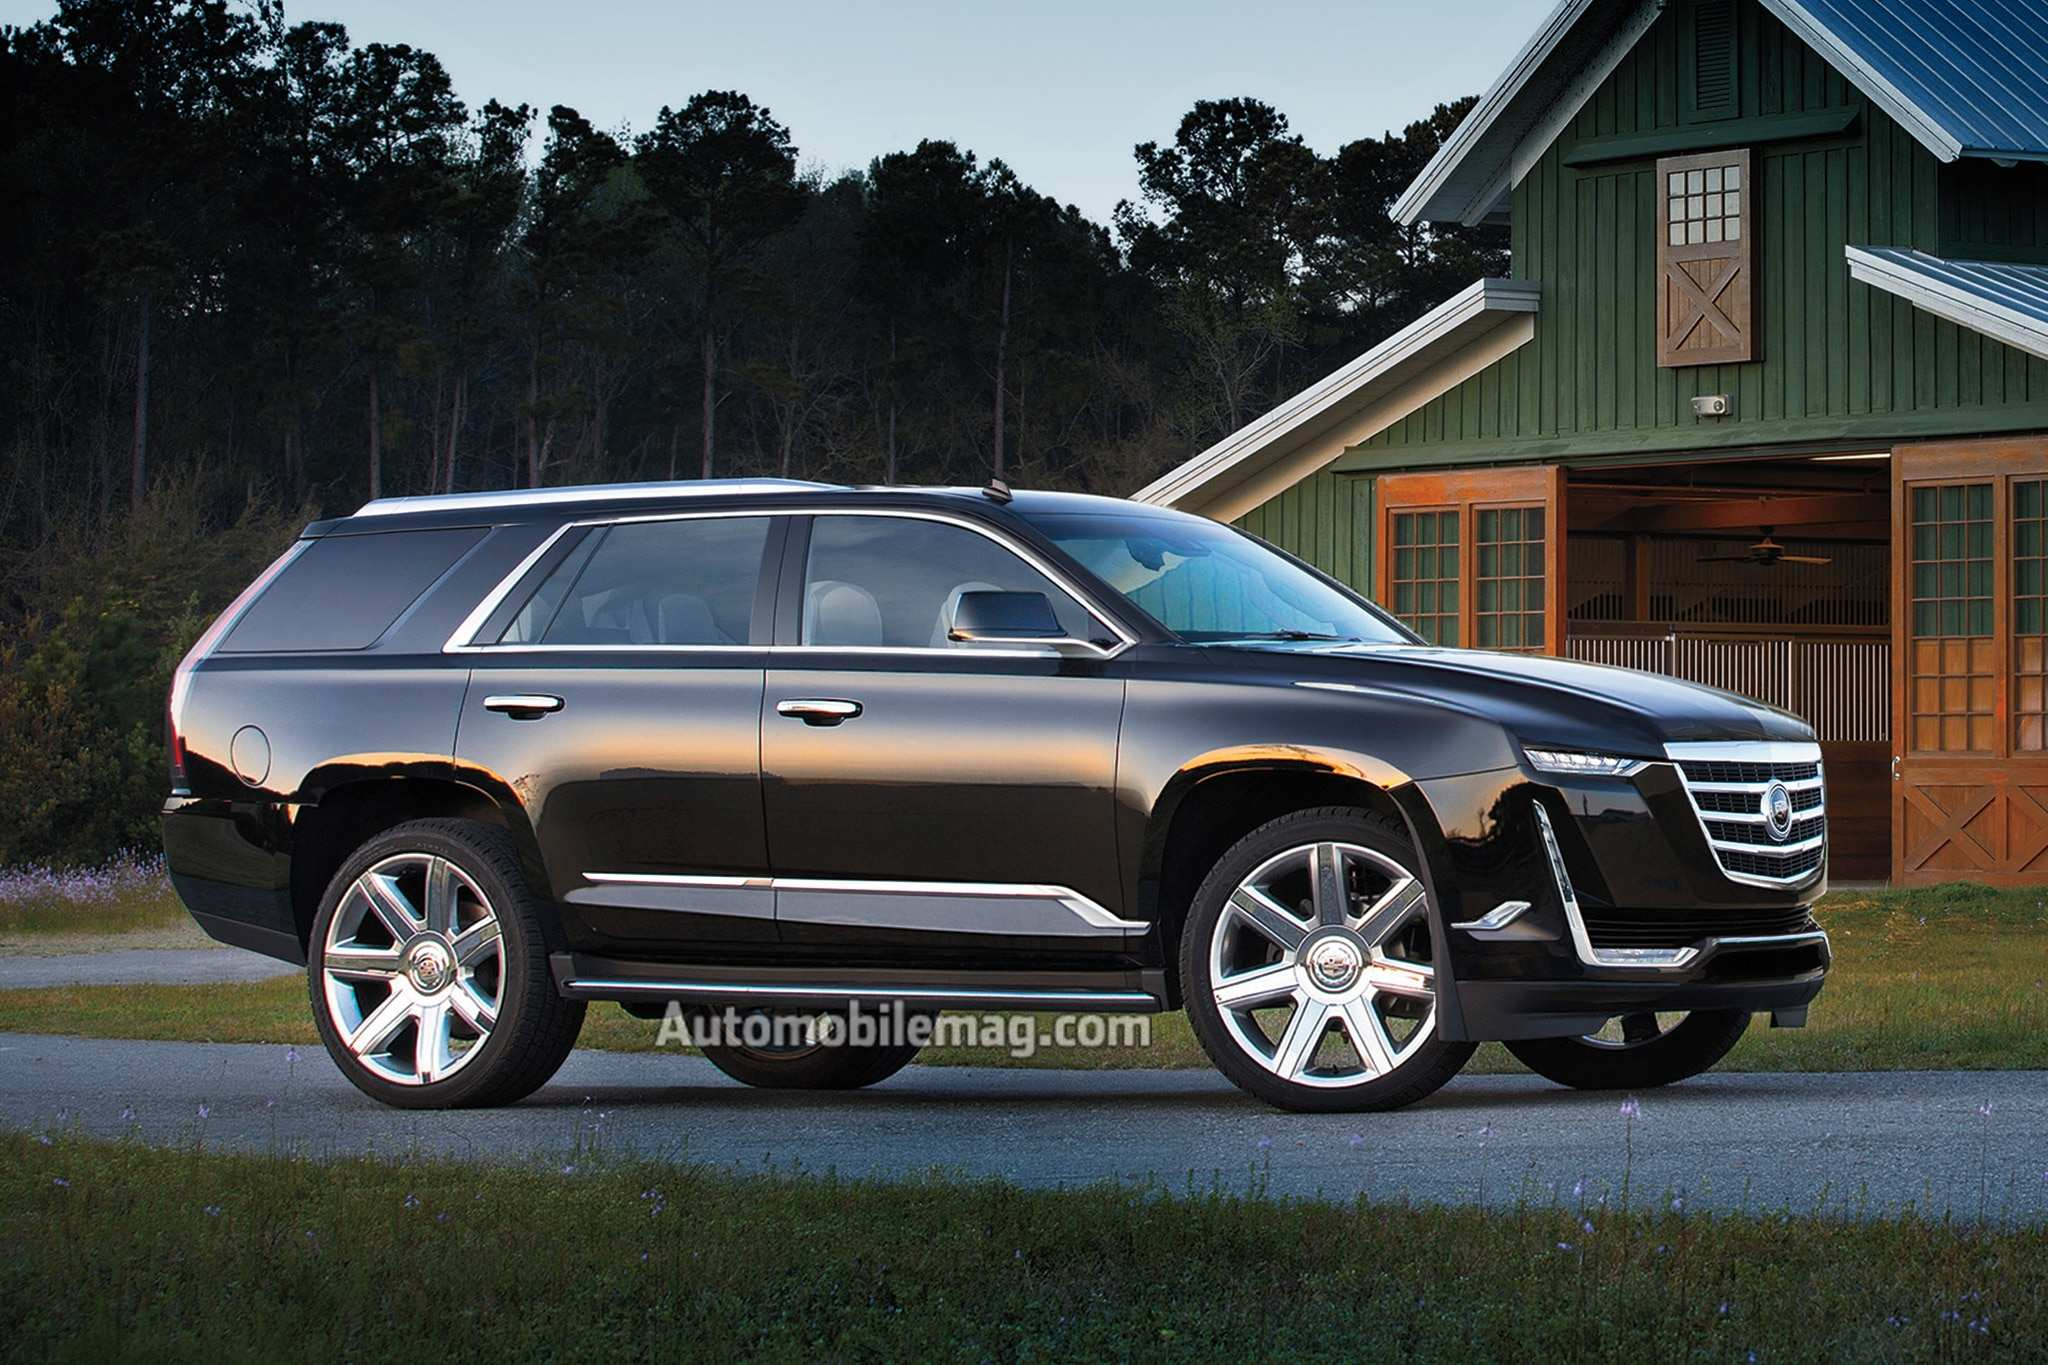 25 The Best 2020 Cadillac Escalade Luxury Suv Price And Review